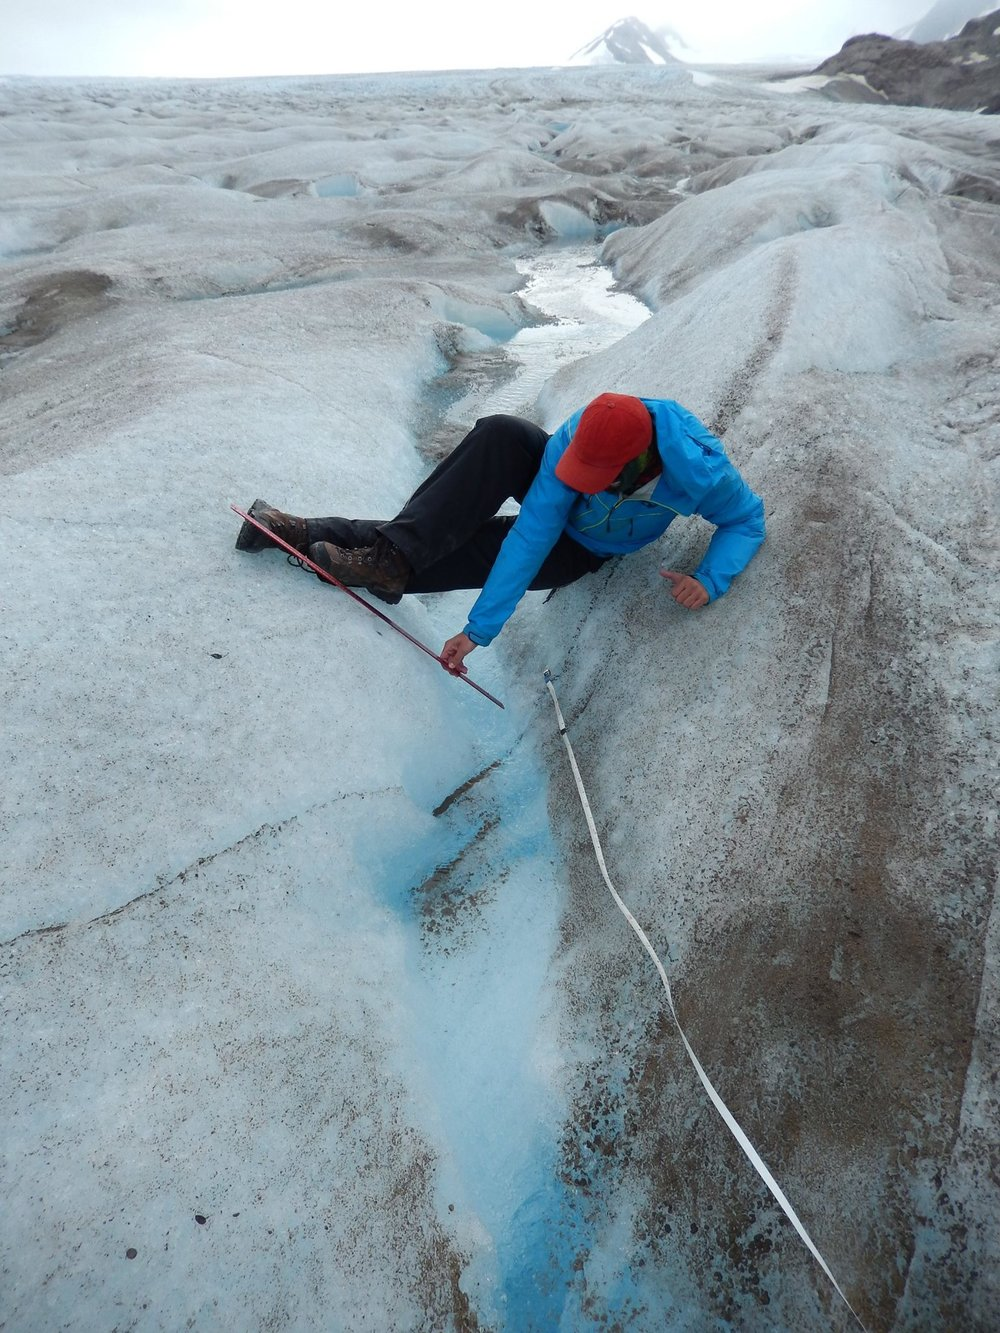 Chris Miele measures the dimensions of a supraglacial stream on the Llewellyn Glacier. Photo credit: Annie Zaccarin